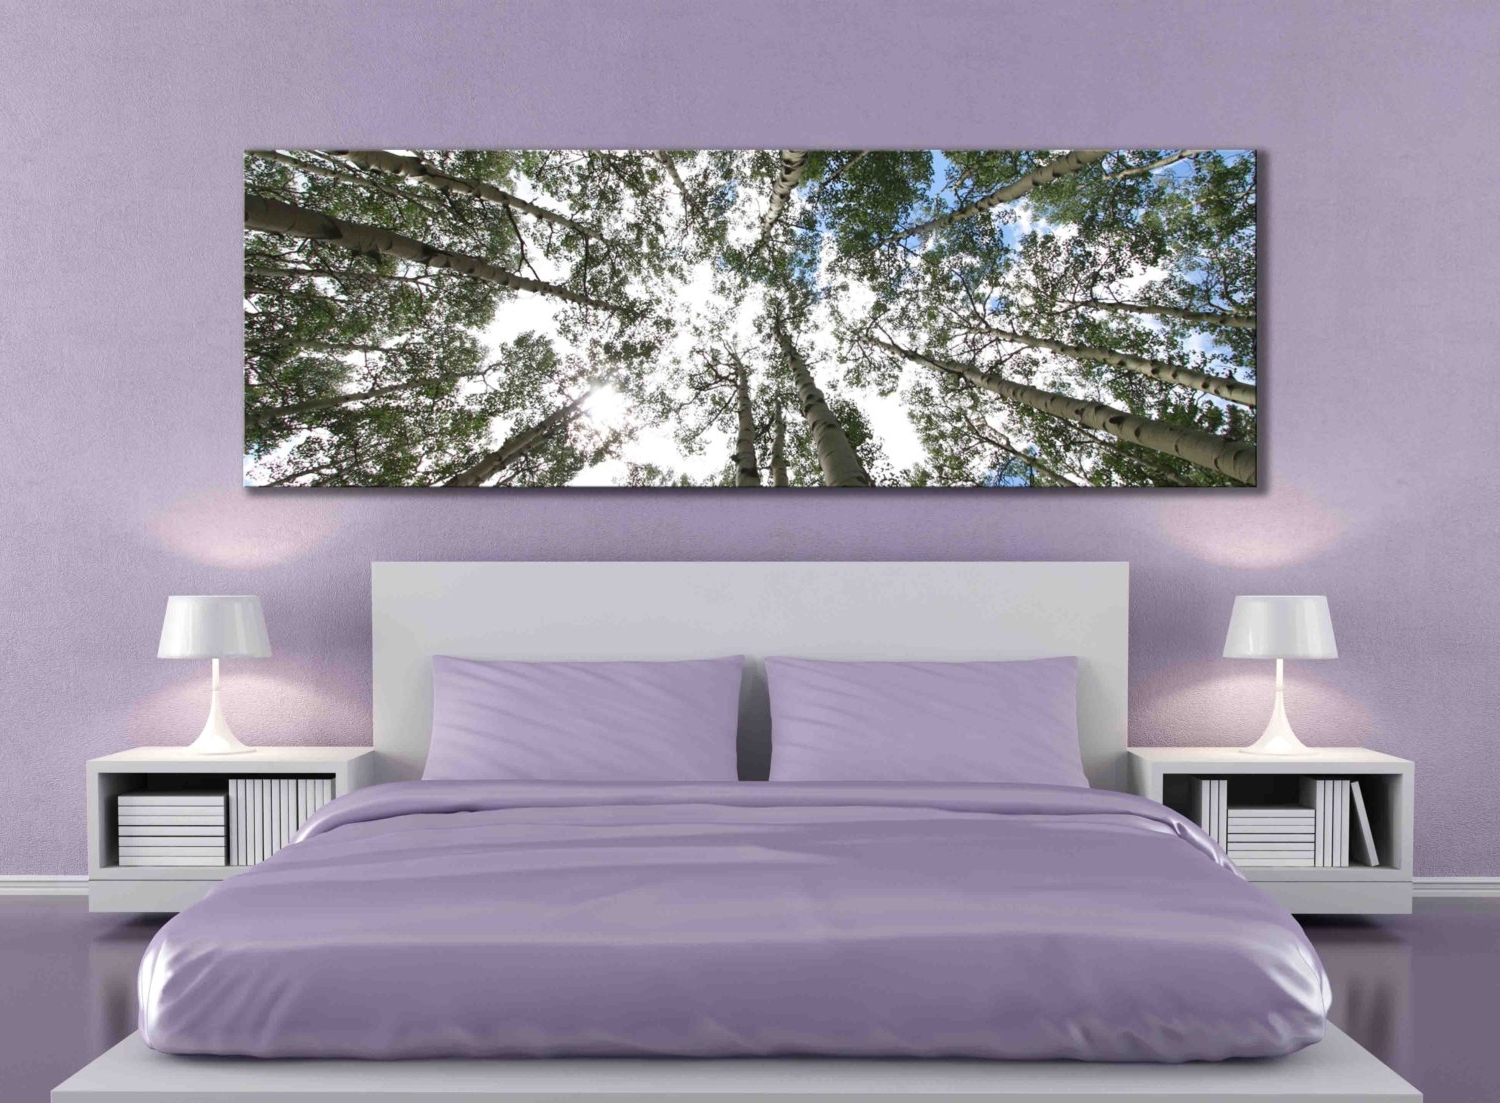 Current Big Aspen Tree Photograph Large Panoramic Canvas Print, Nature Intended For Over The Bed Wall Art (View 6 of 15)